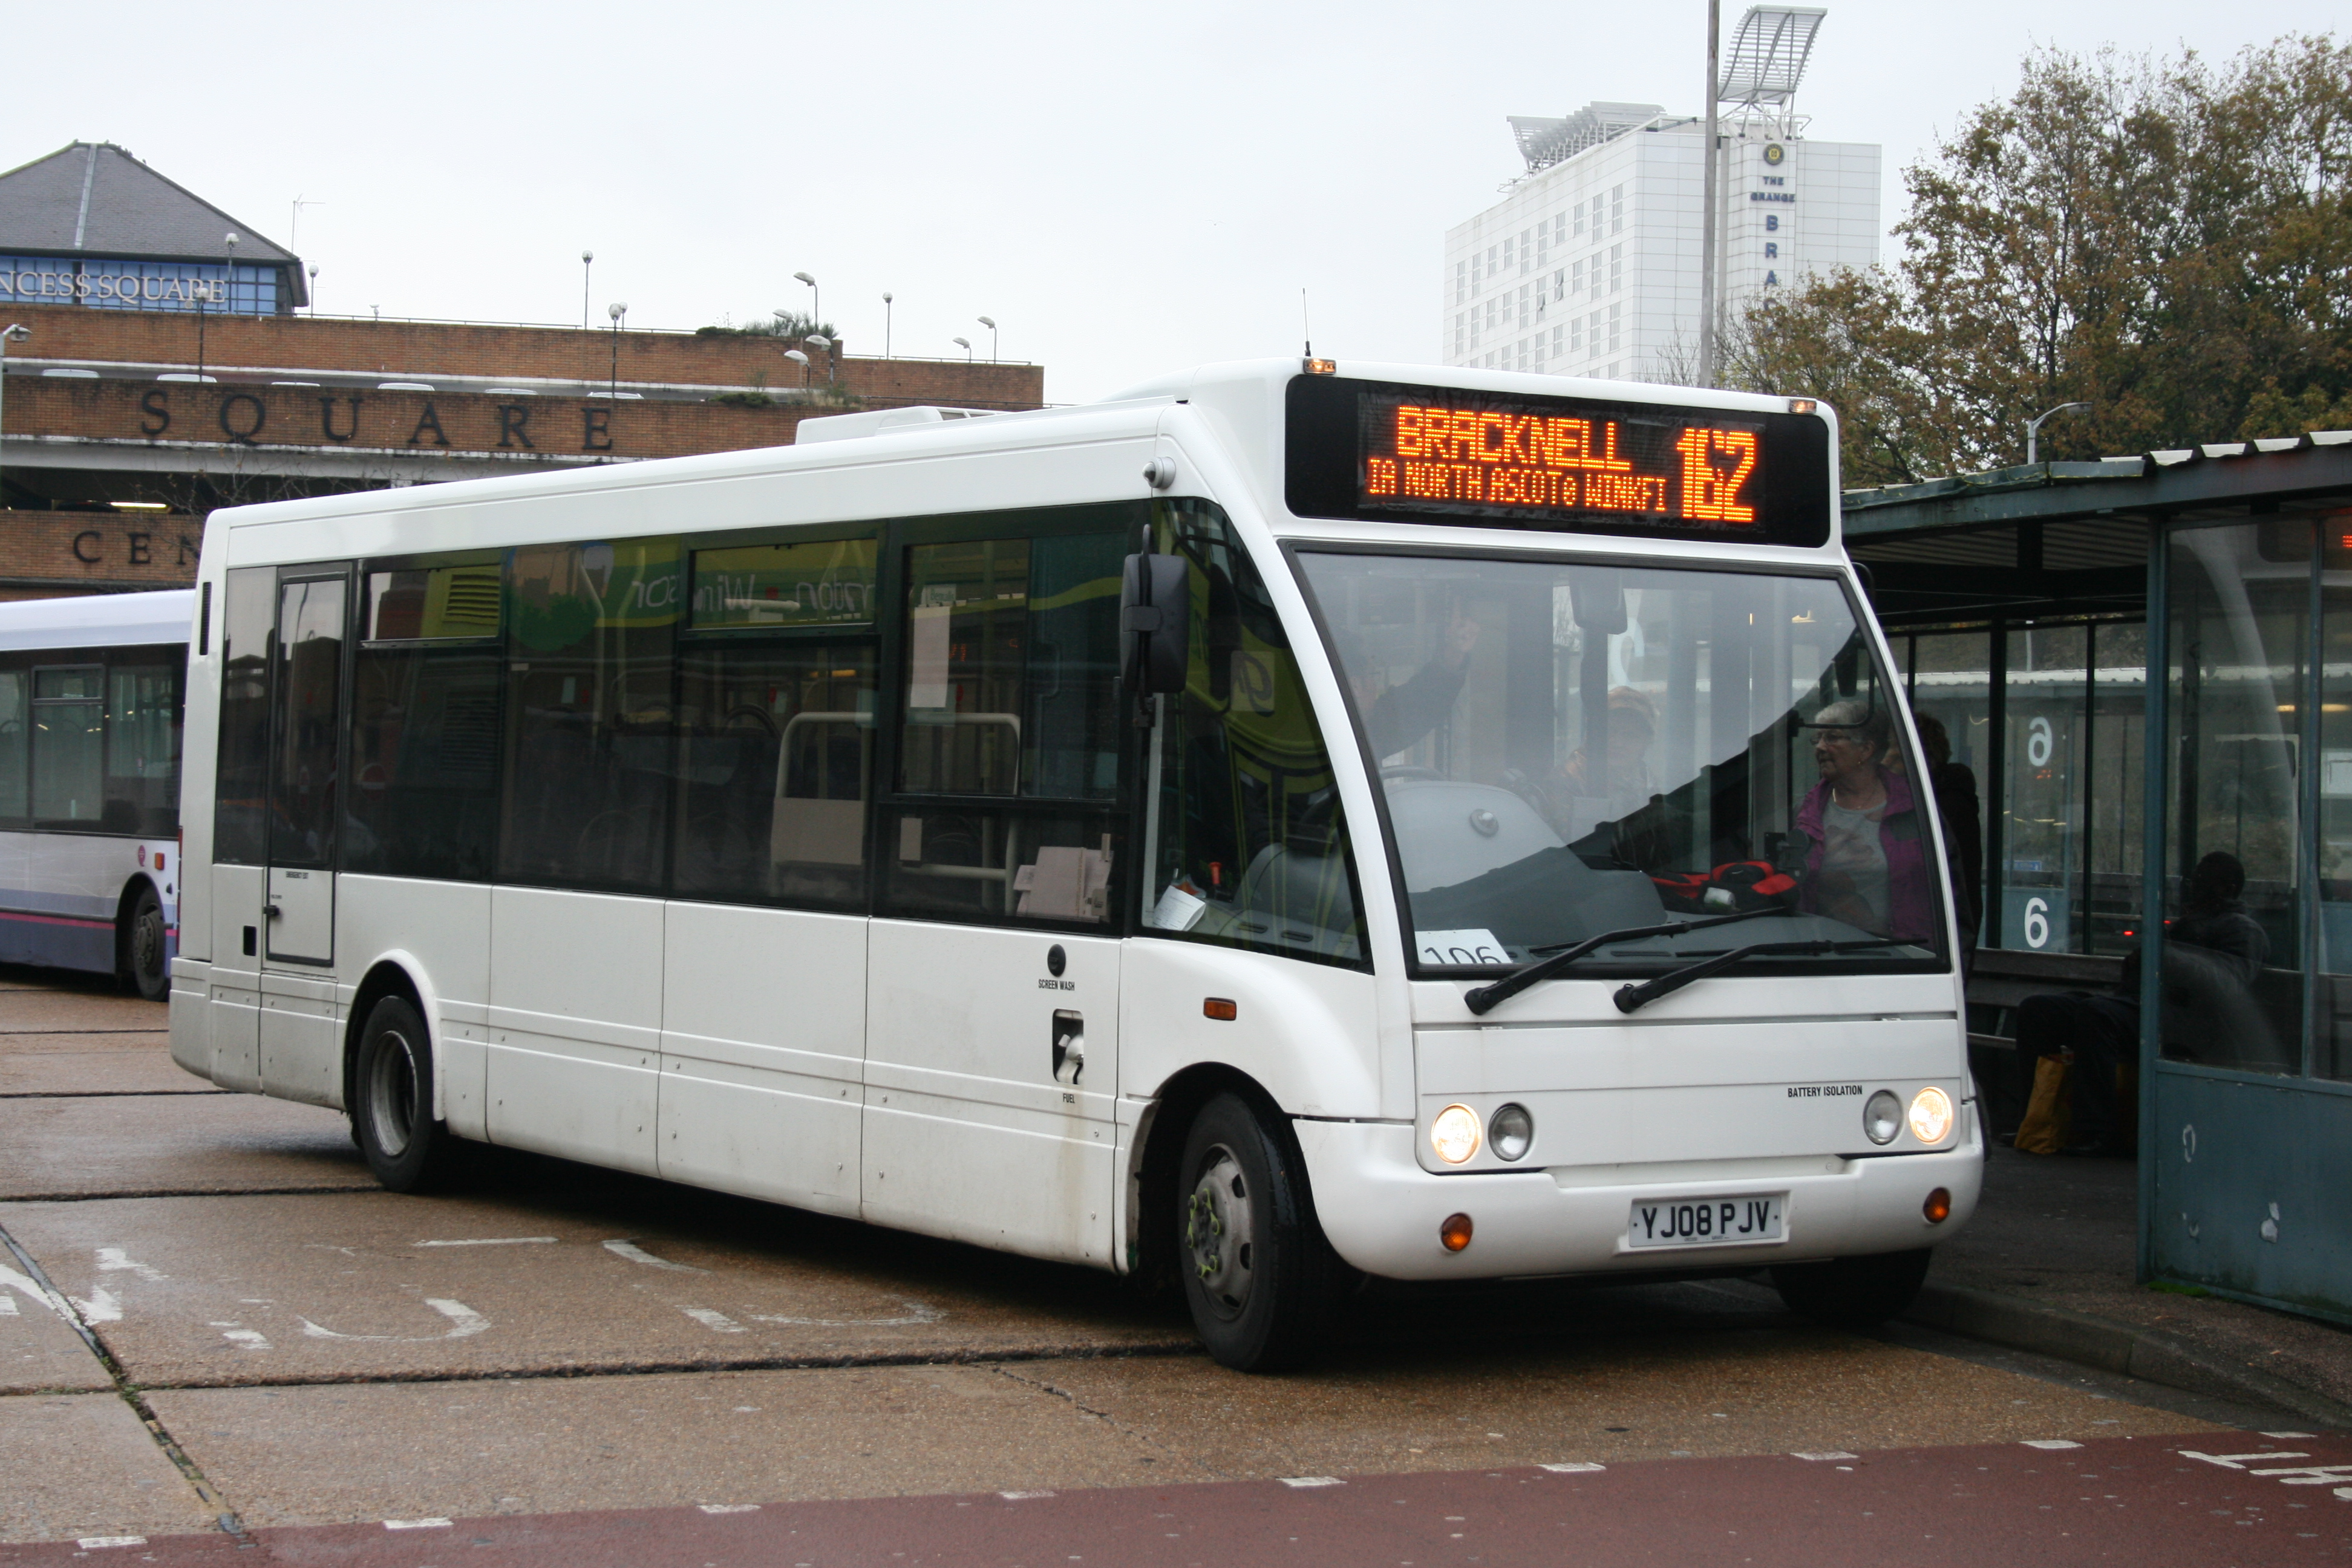 file:courtney buses yj08 pjv on route 162, bracknell bus station